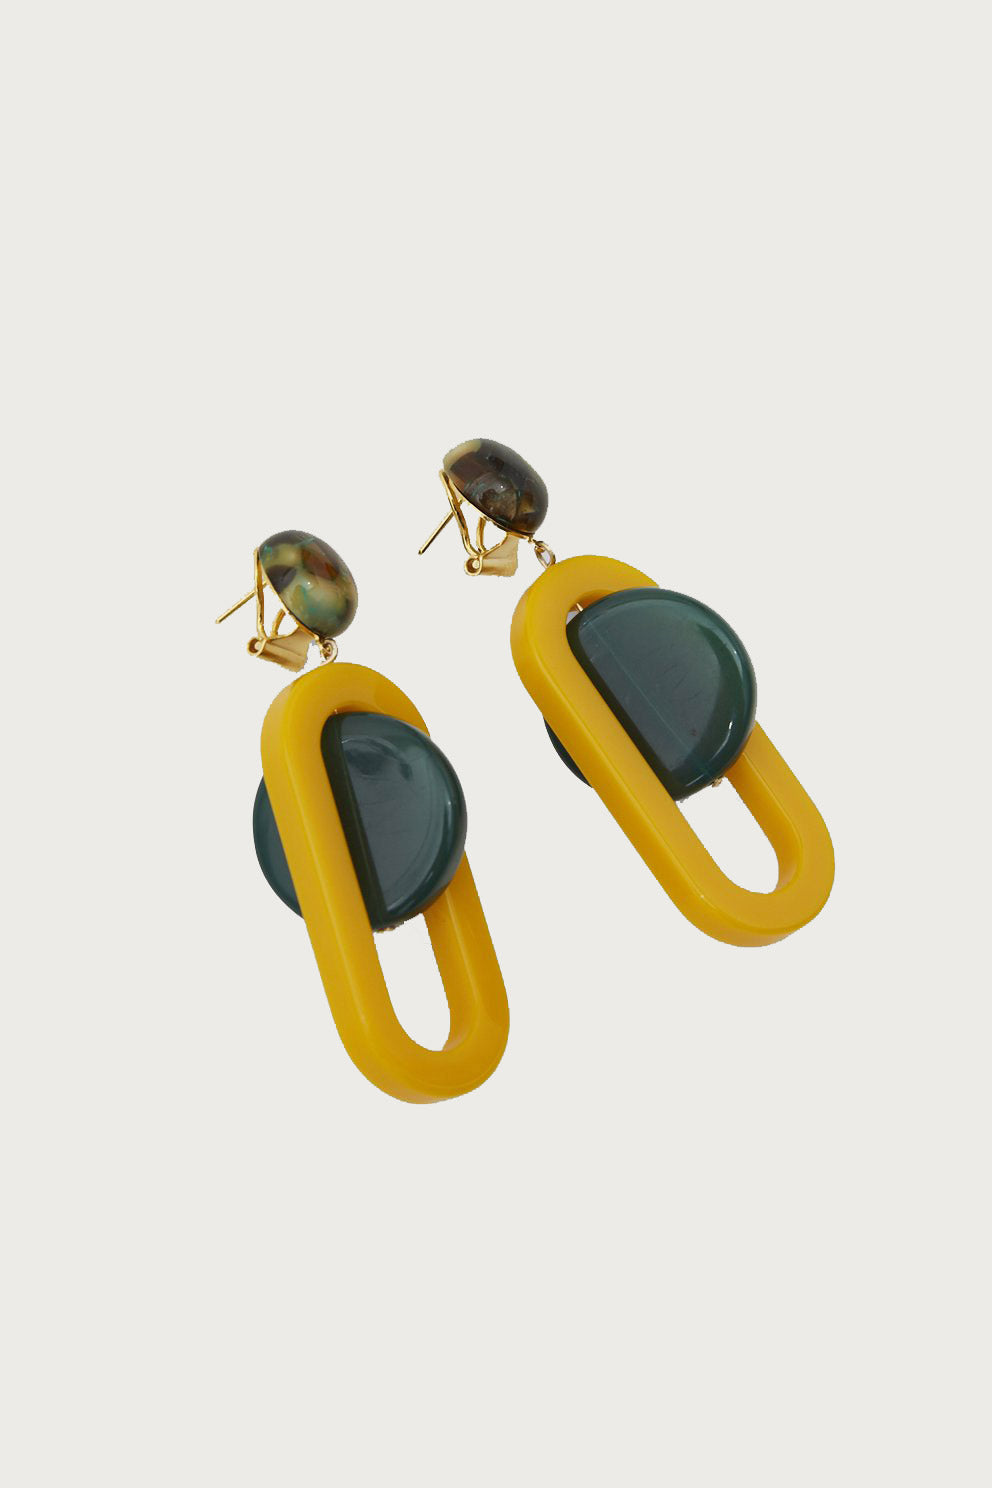 Lohr Earring in Army Green-Mustard